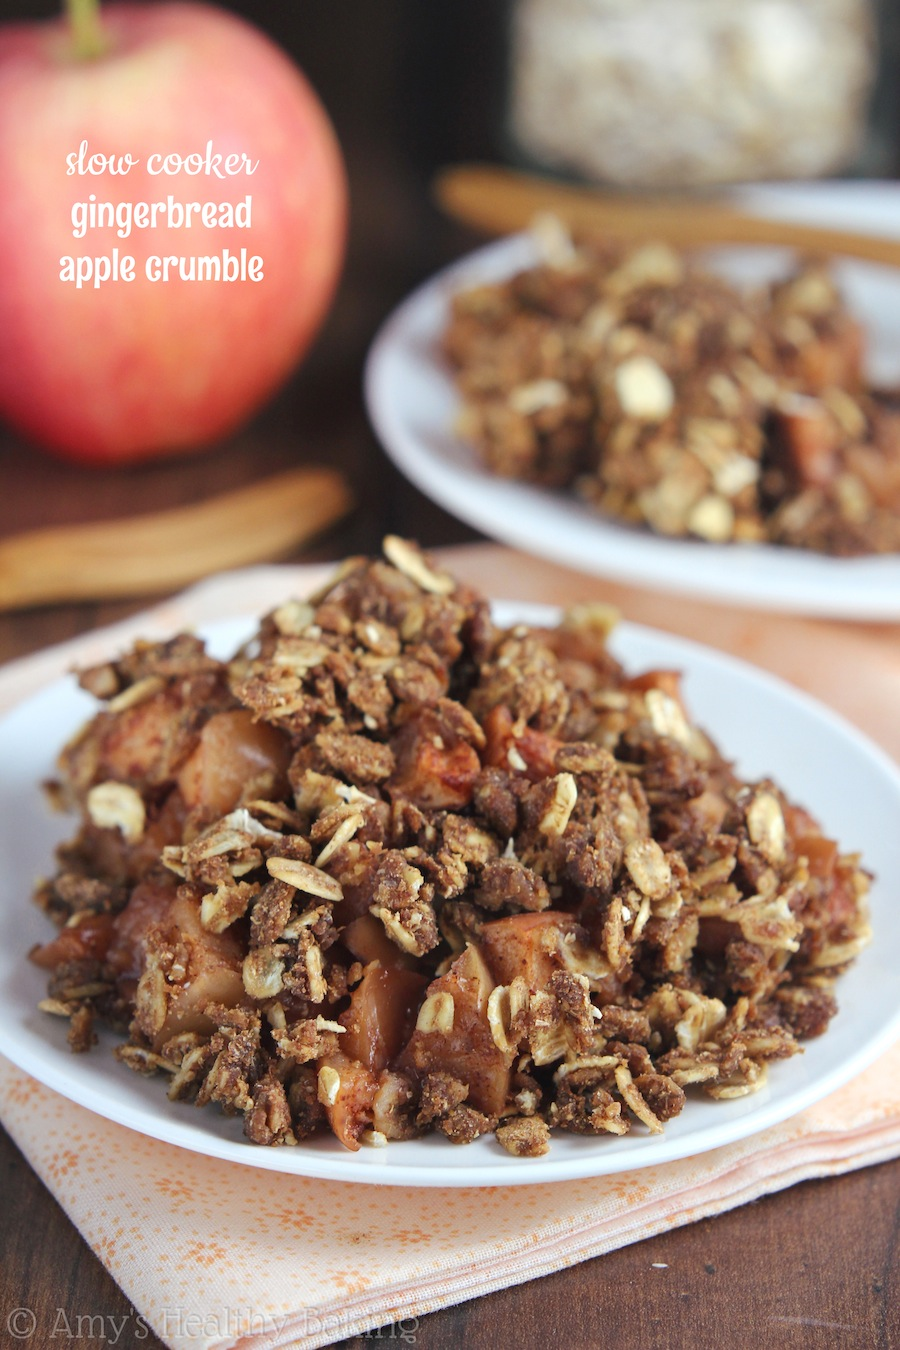 Famed Evenhealthy Slow Cooker Gingerbread Apple Crumble Healthy Baking Crockpot Apple Dessert Recipes Easy Vegan Crockpot Dessert Recipes Slow Cooker Gingerbread Apple Crumble So Easy To nice food Crockpot Dessert Recipes